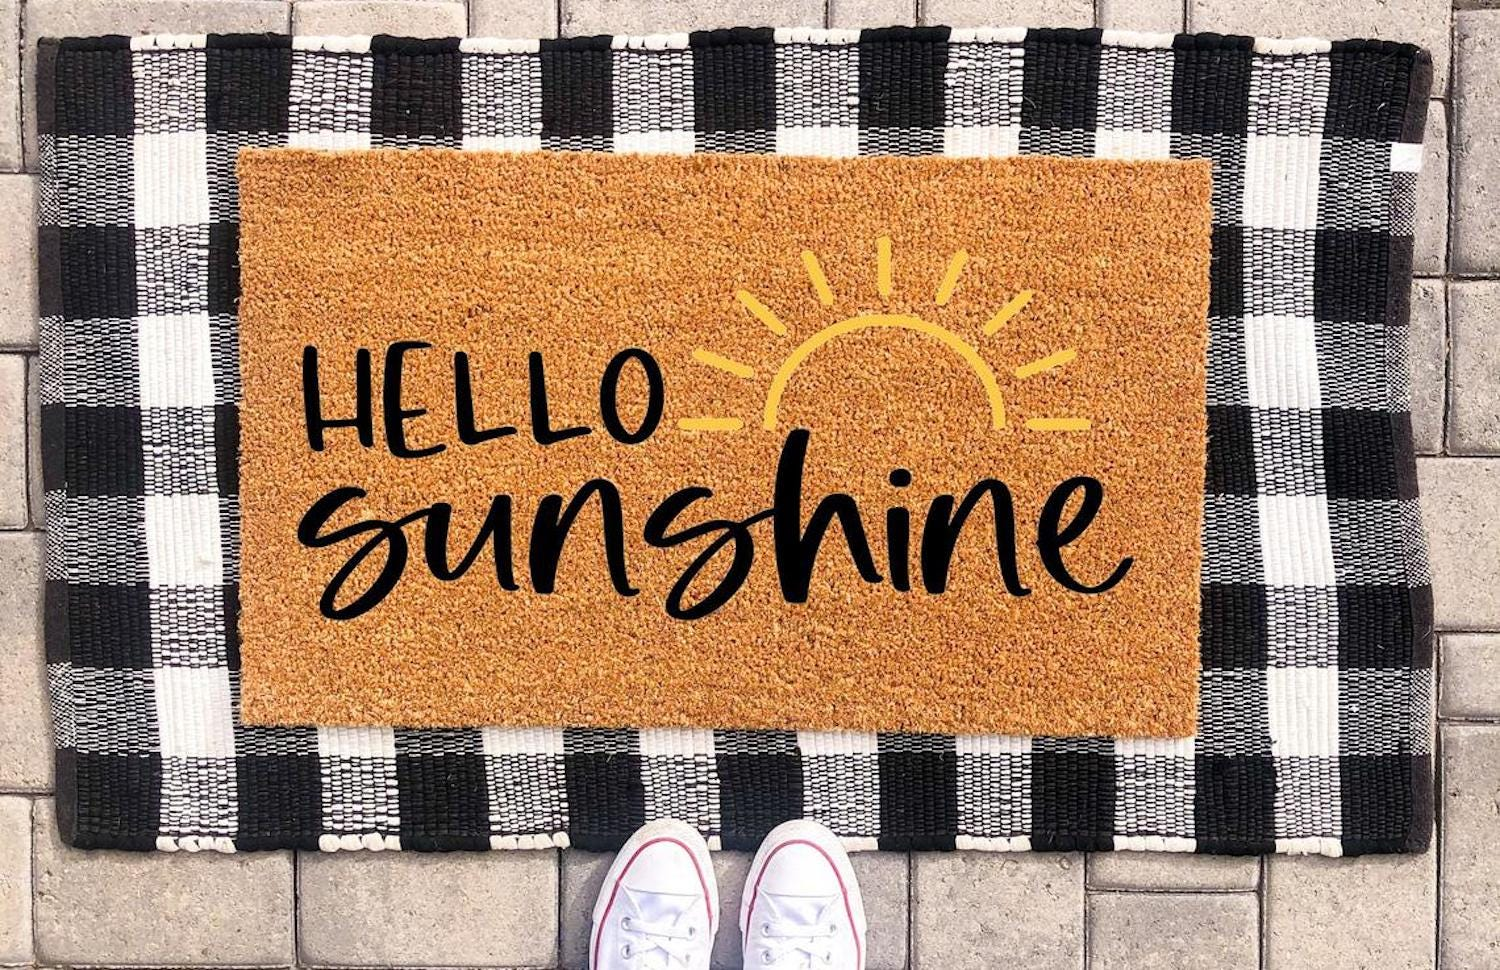 """A doormat with """"hello sunshine"""" and a sun design on it, sitting on a larger black and white check mat"""